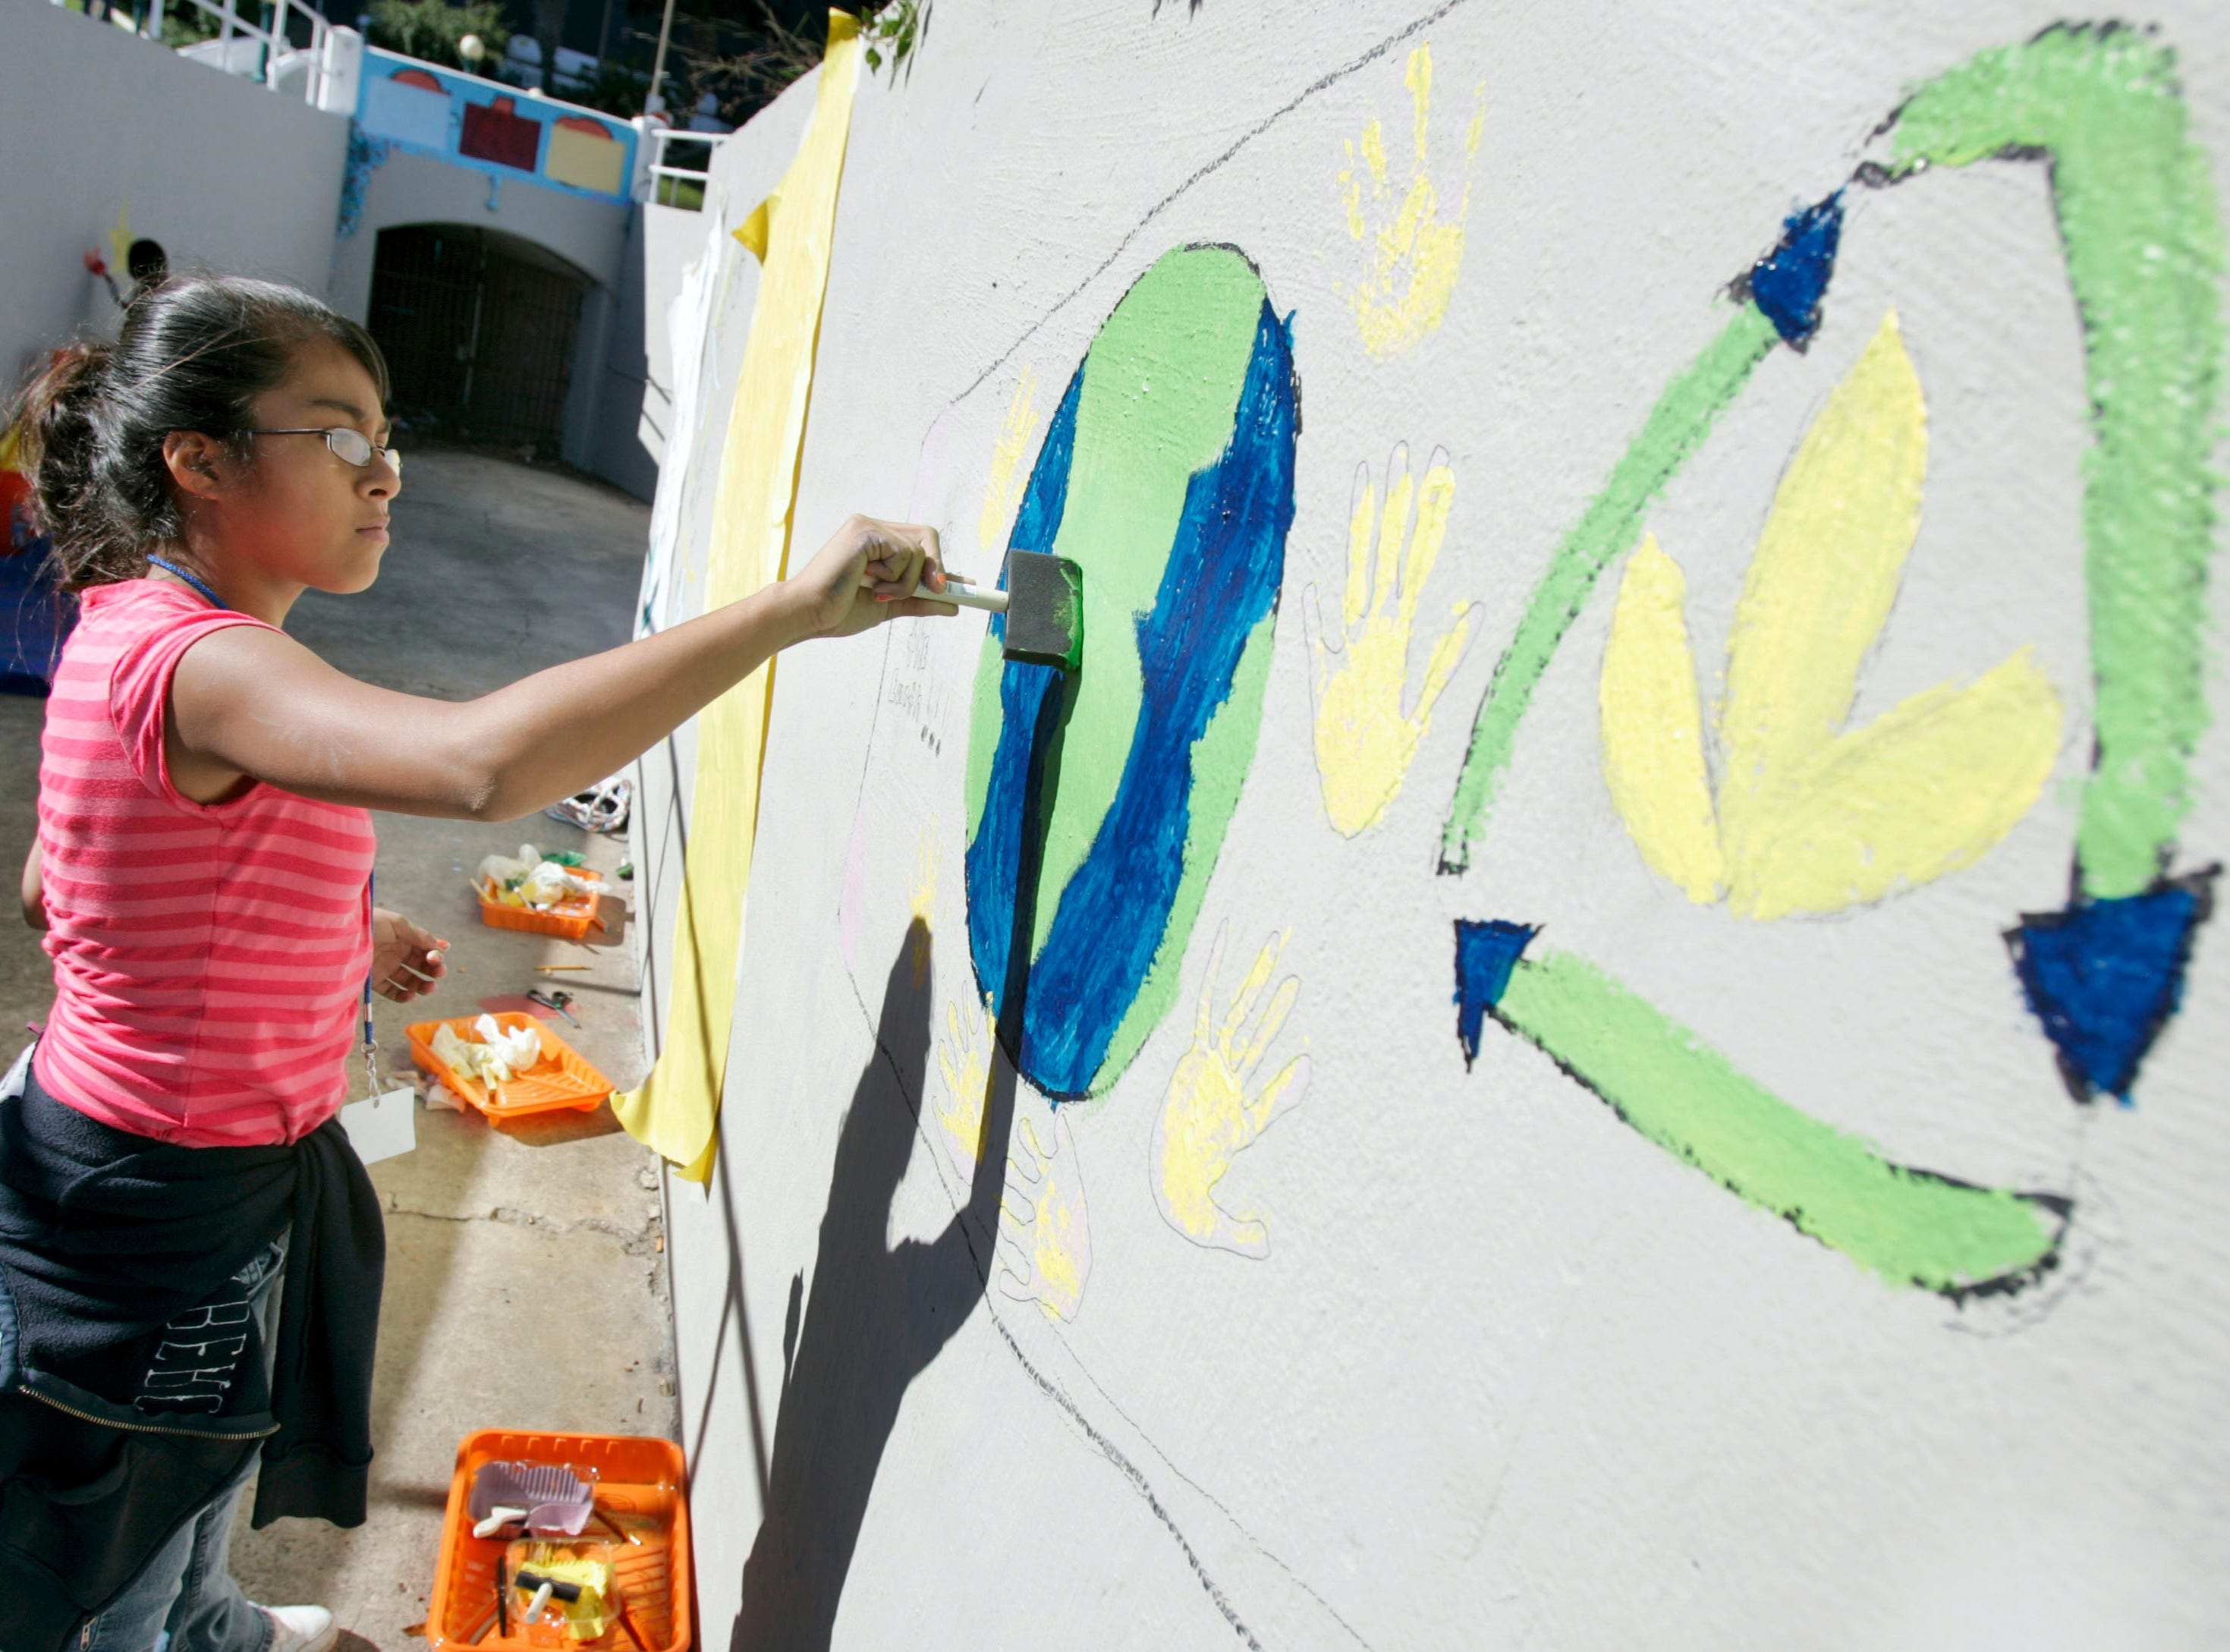 Leesa Hernandez, 12, a member of the Oso Recreation Center, works on an earth-friendly surfboard mural Wednesday, Nov. 25, 2009 on the walls leading to the entrance of the old bluff tunnel by La Retama Park in downtown Corpus Christi. Several children aged 13-17 participated in the Operation Surfboard art project.